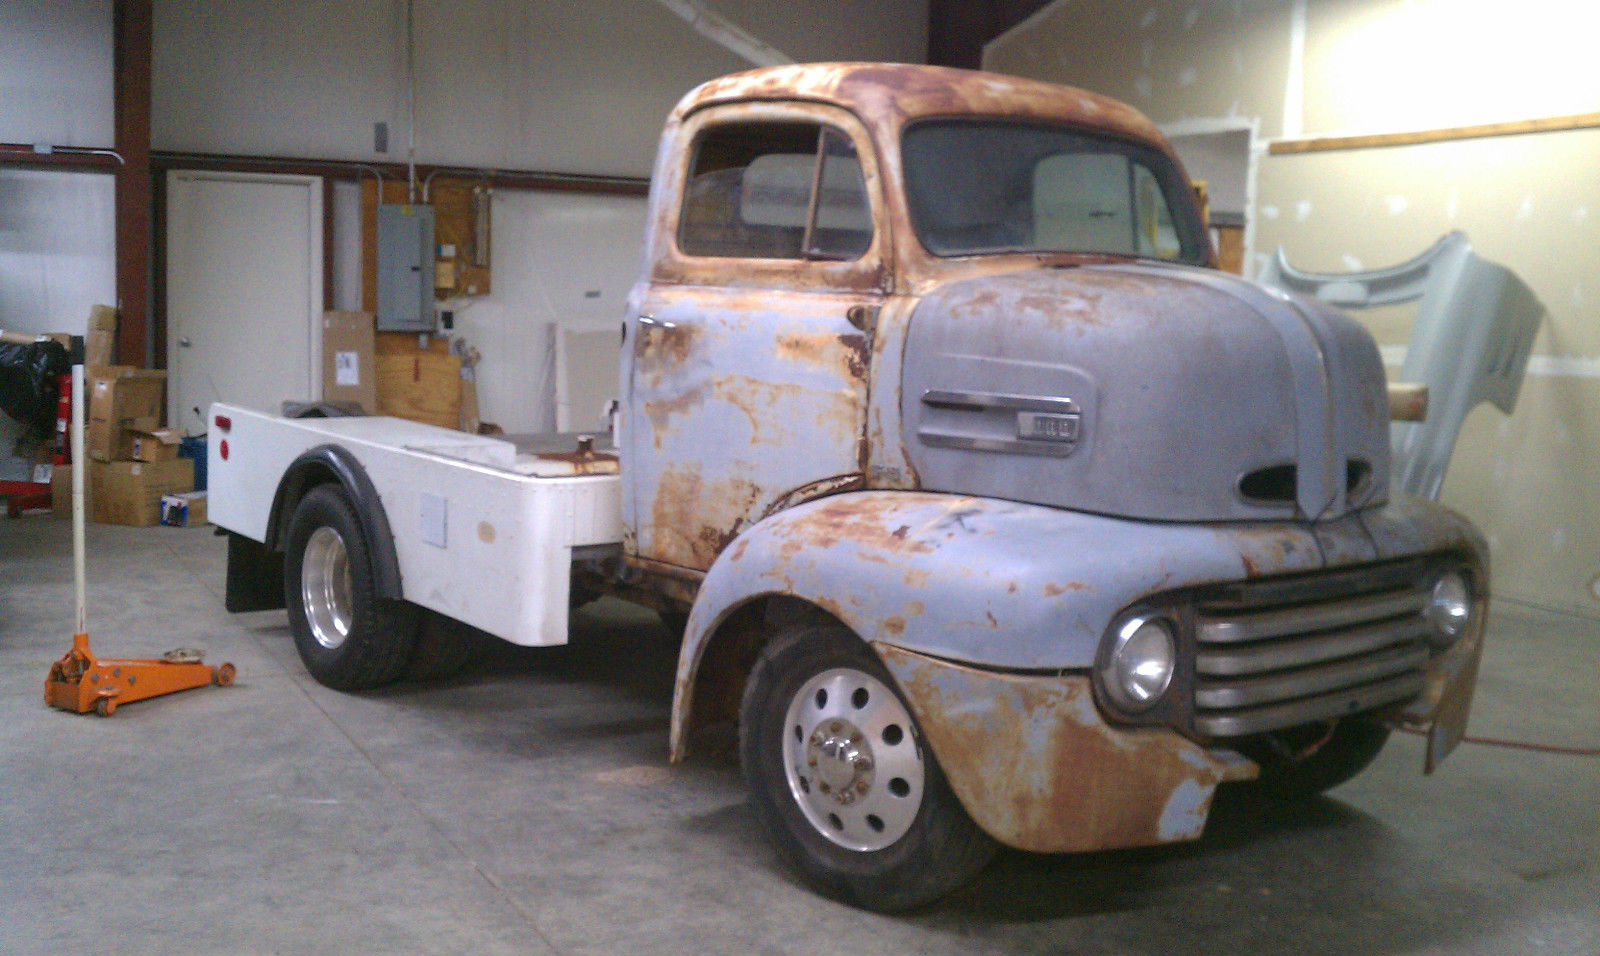 1949 Ford F5 Coe Project With 454 Engine On 1985 P30 Chevy Chassis Truck Vin Number Other Pickups